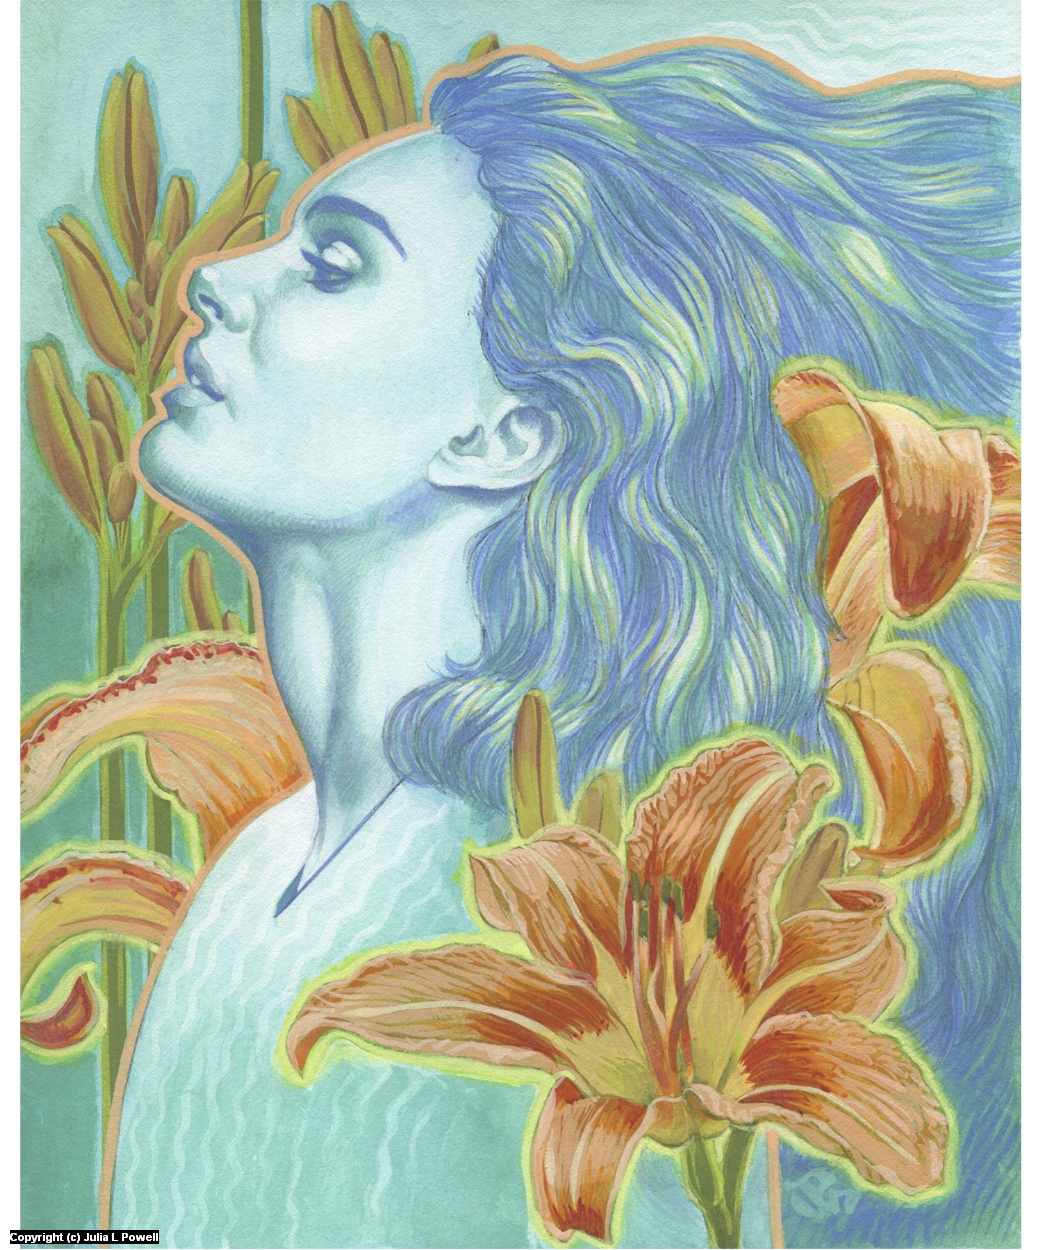 Day Lily Ghost Artwork by Julia Powell